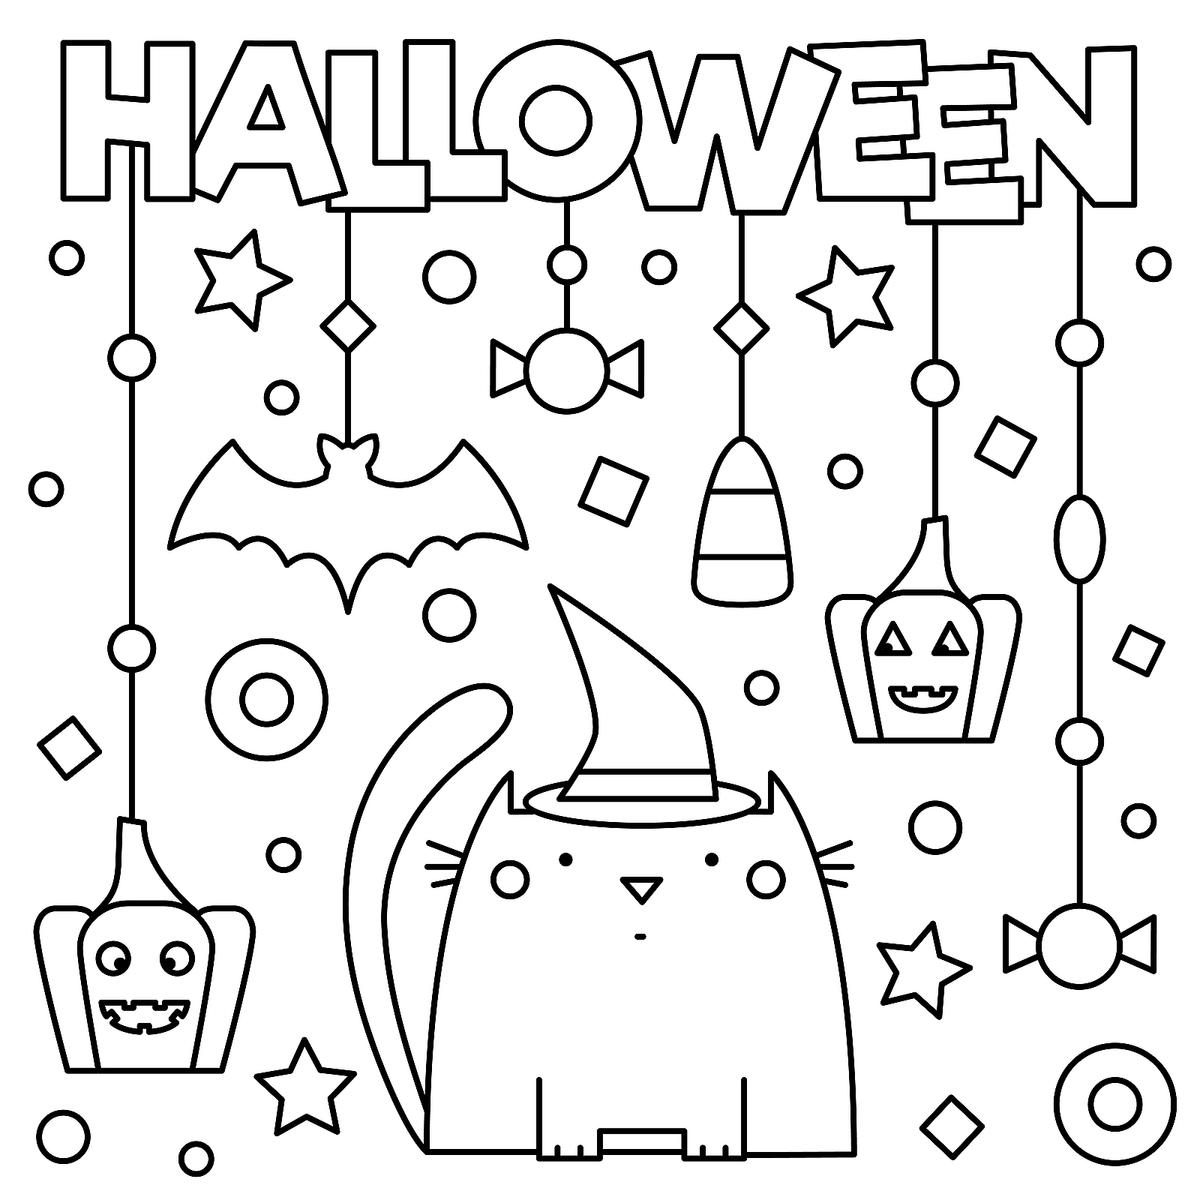 coloring sheets halloween halloween coloring pages 10 free spooky printable sheets coloring halloween